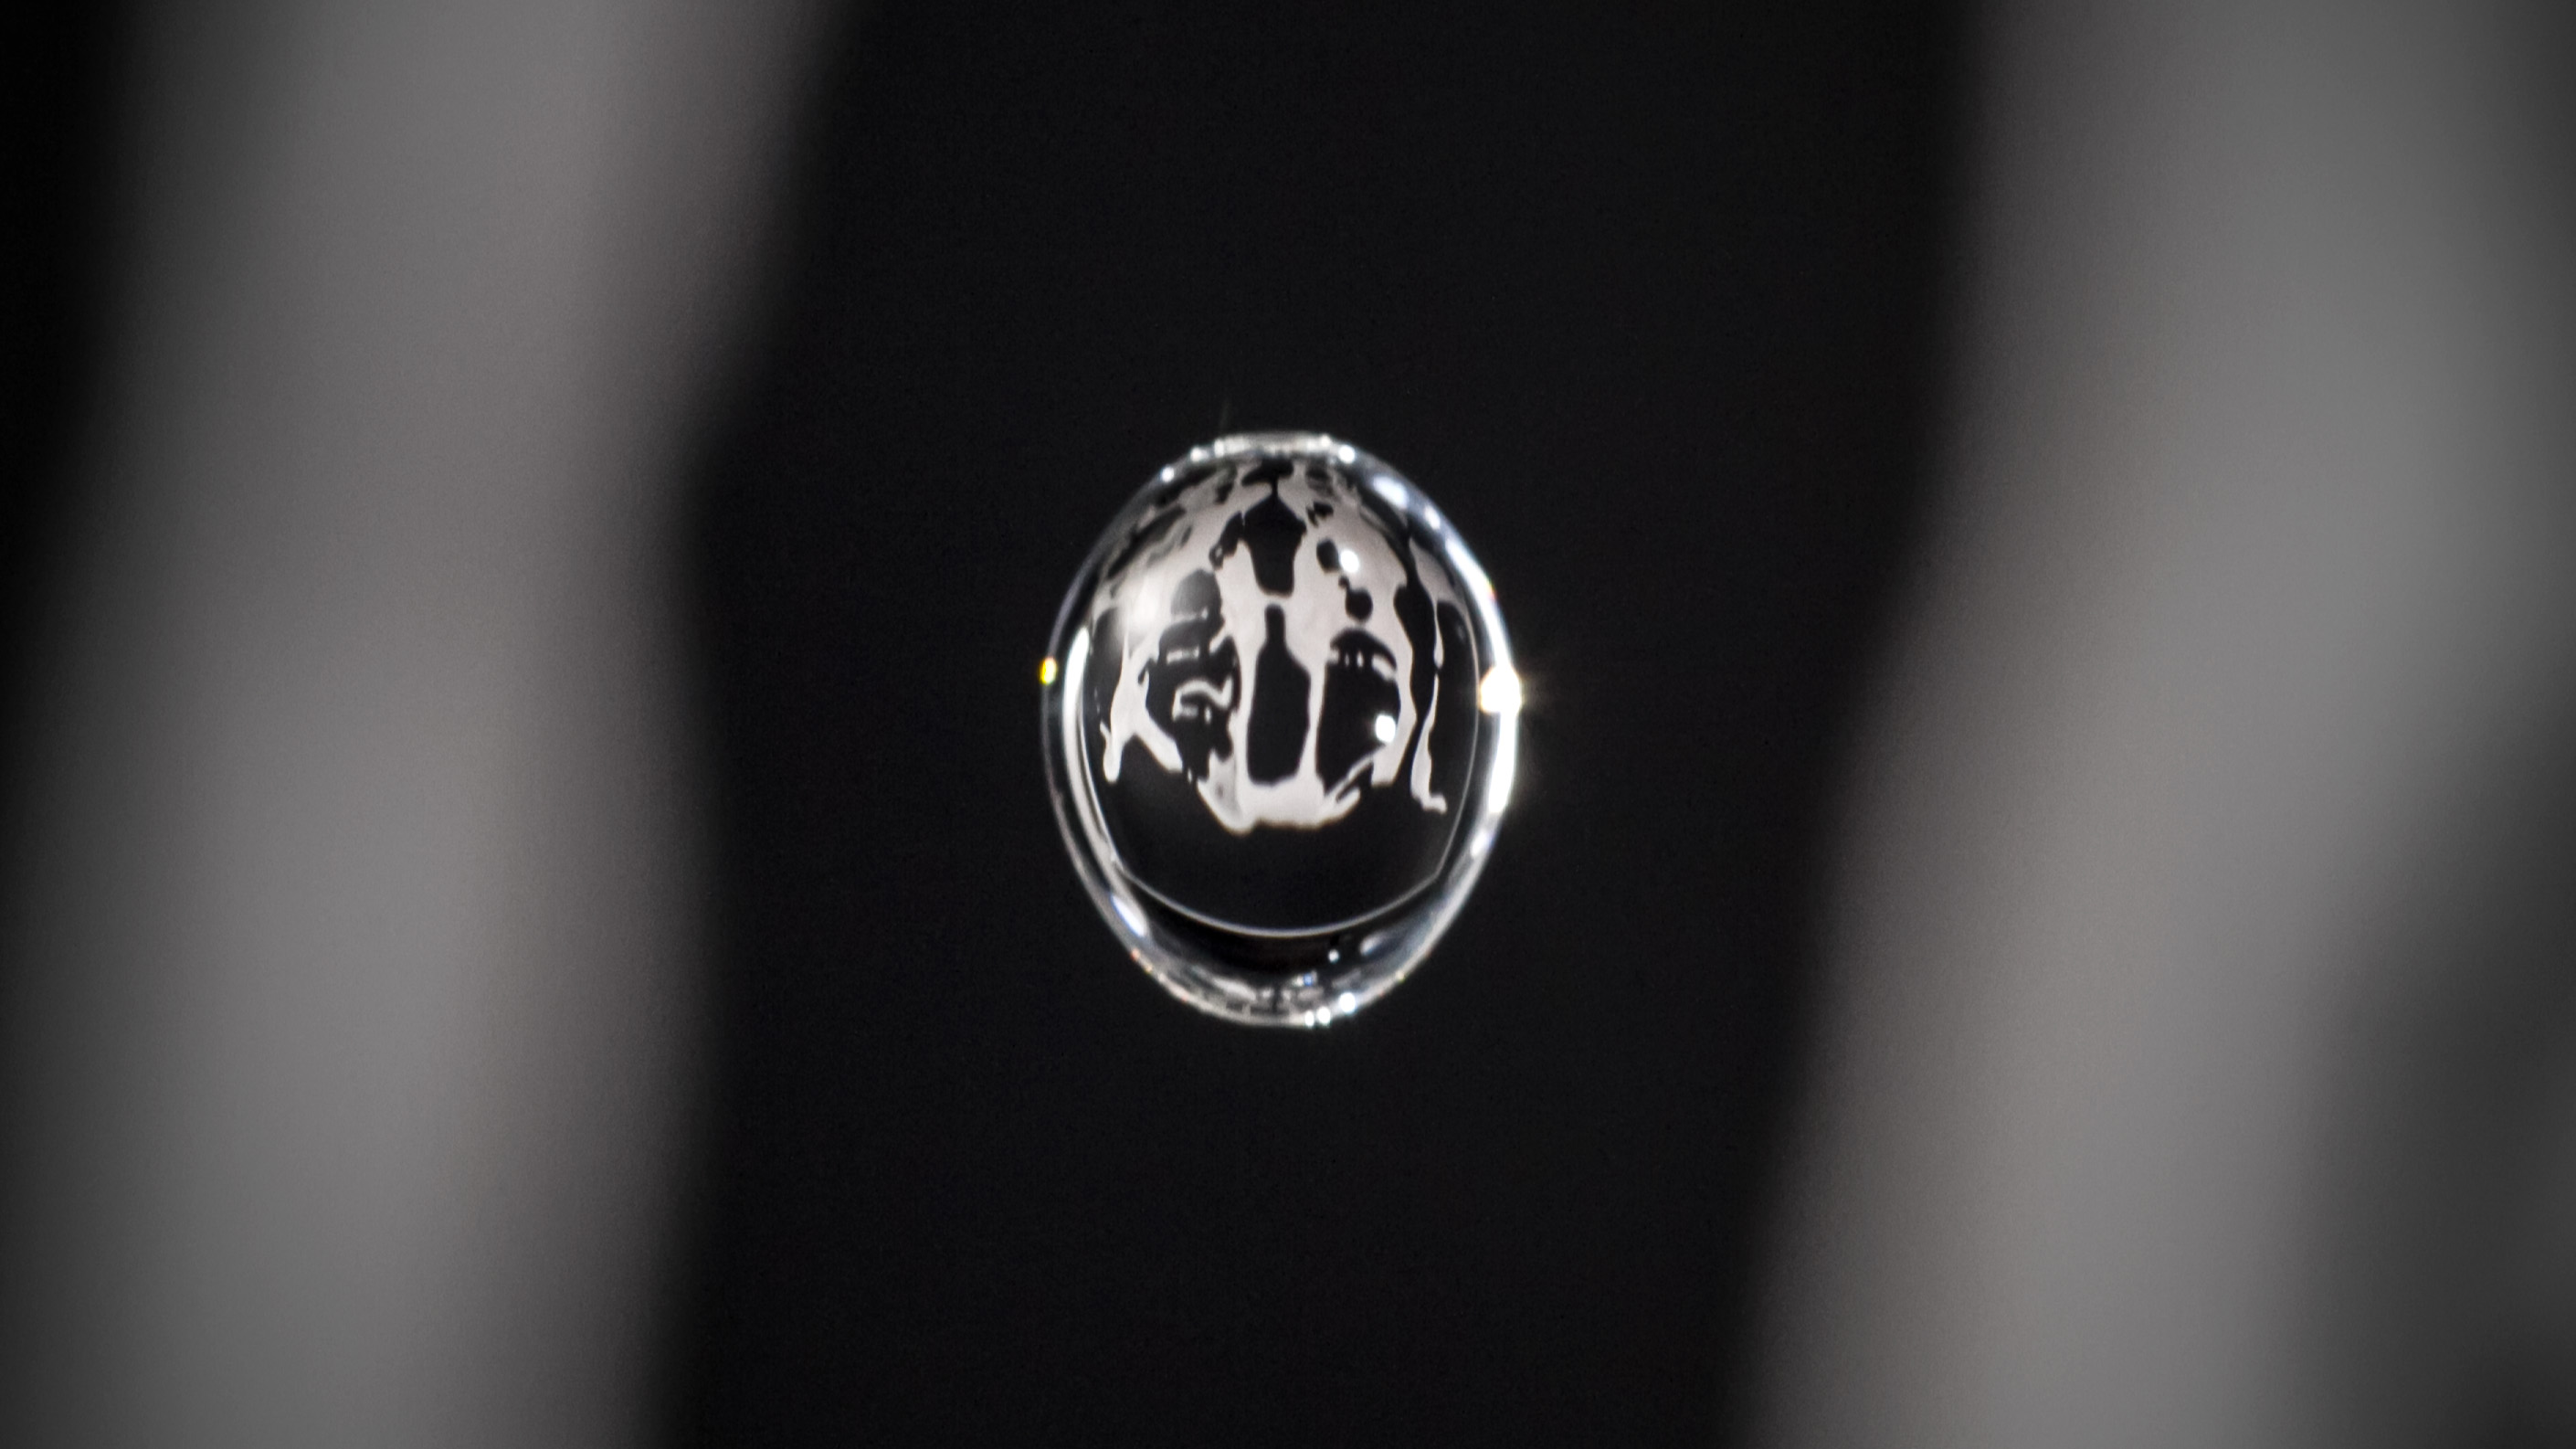 An animation inside a water drop by Physalia